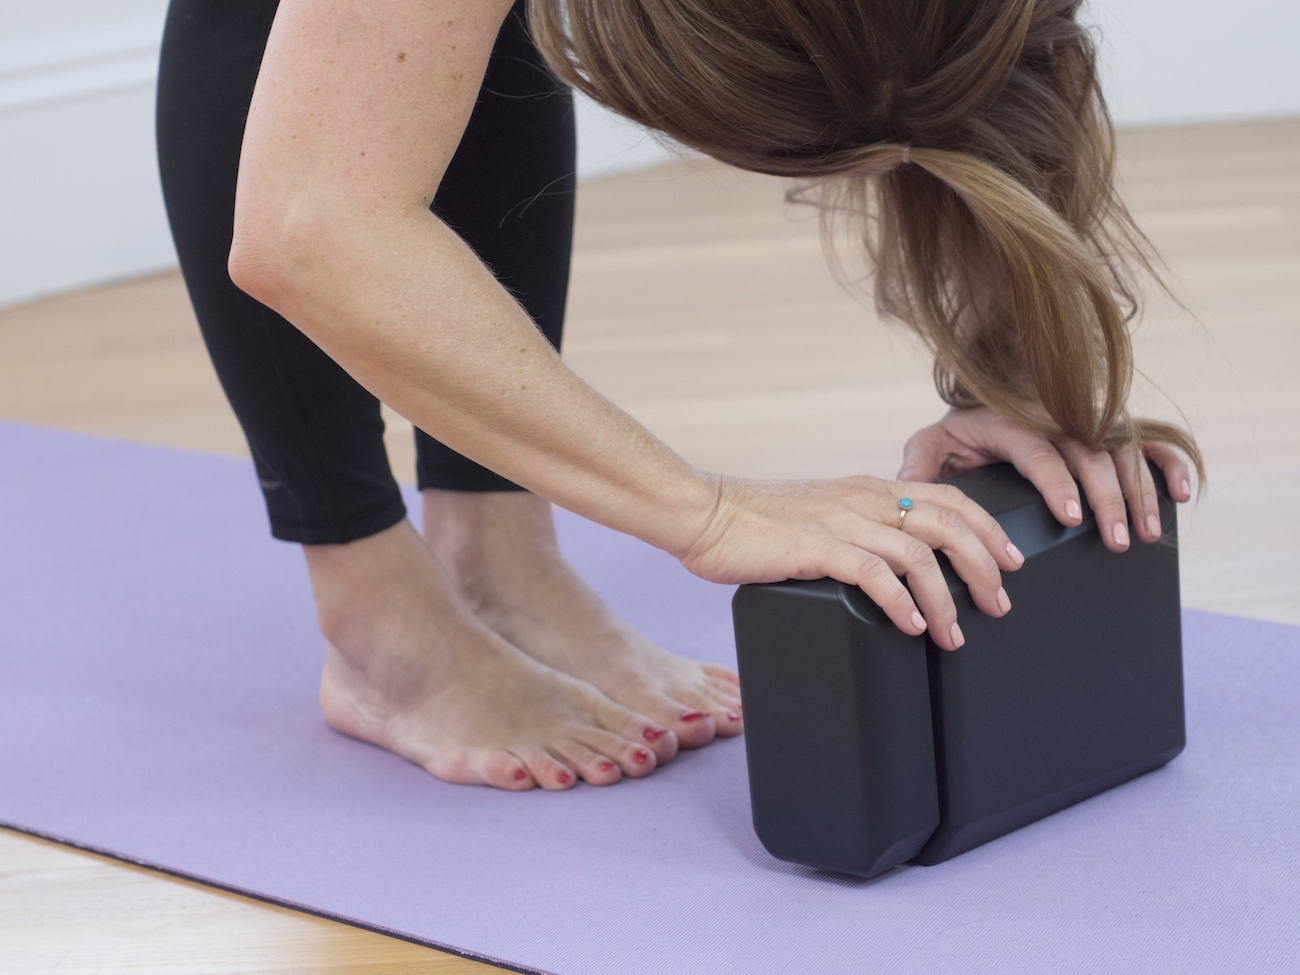 The best yoga accessories to channel your inner yogi